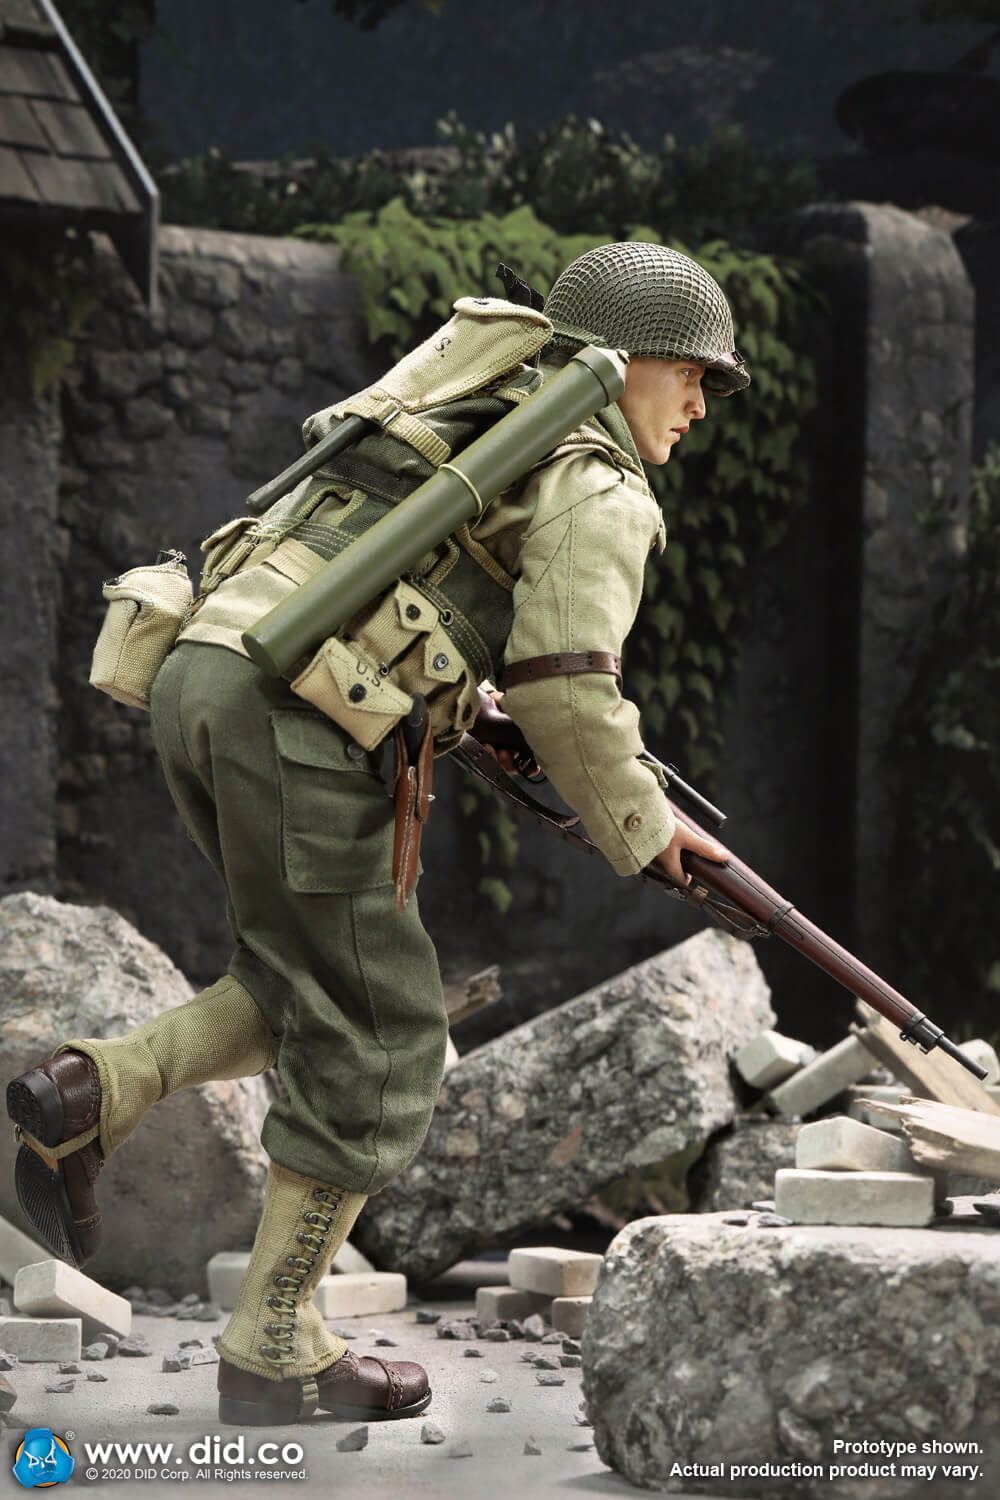 DiD - NEW PRODUCT: DiD: A80144 WWII US 2nd Ranger Battalion Series 4 Private Jackson 24116